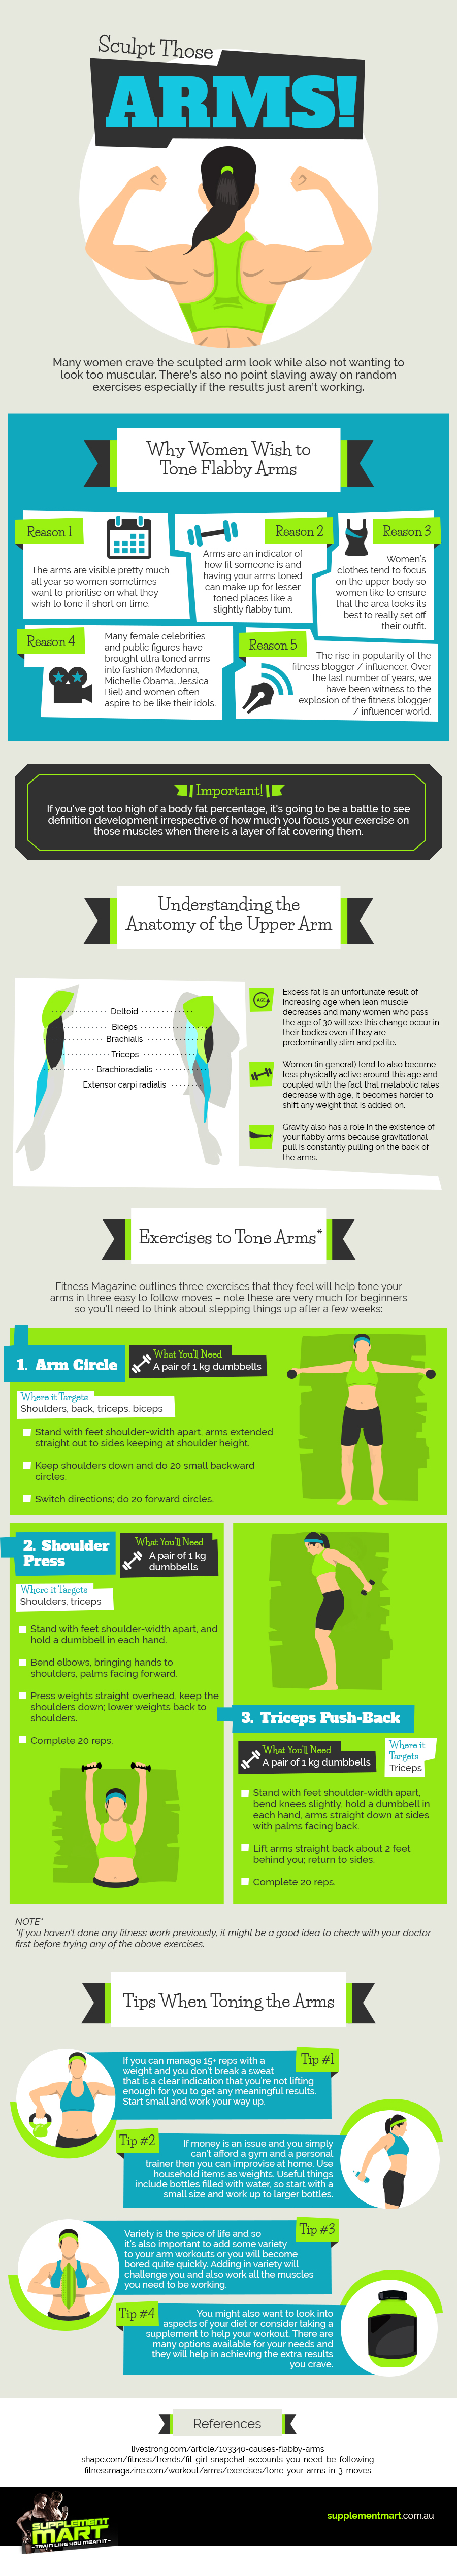 Exercises To Tone Your Arms infographic